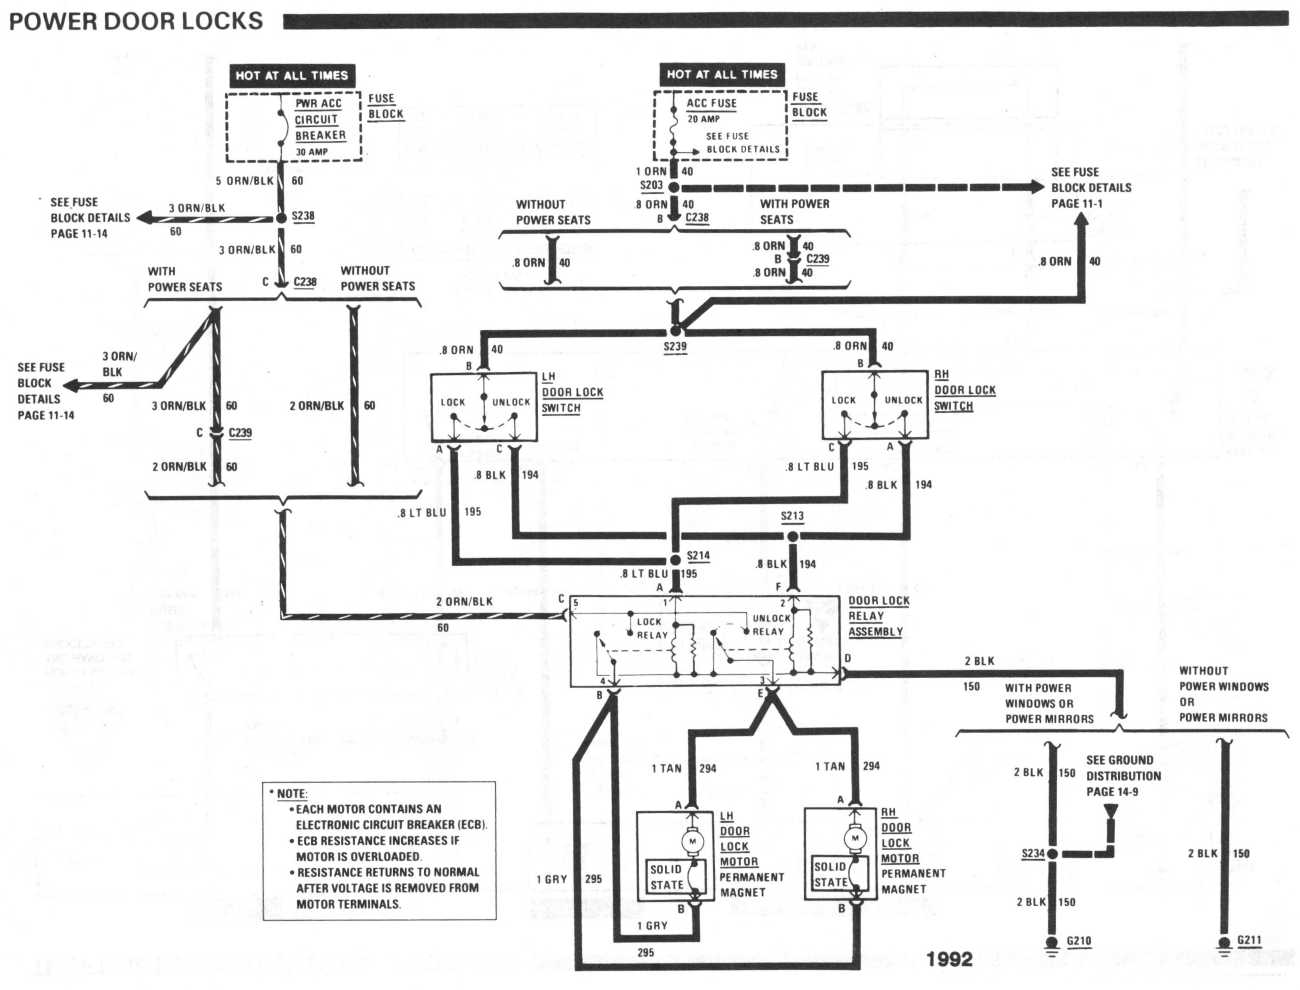 09 F150 Door Lock Relay Wiring Diagram